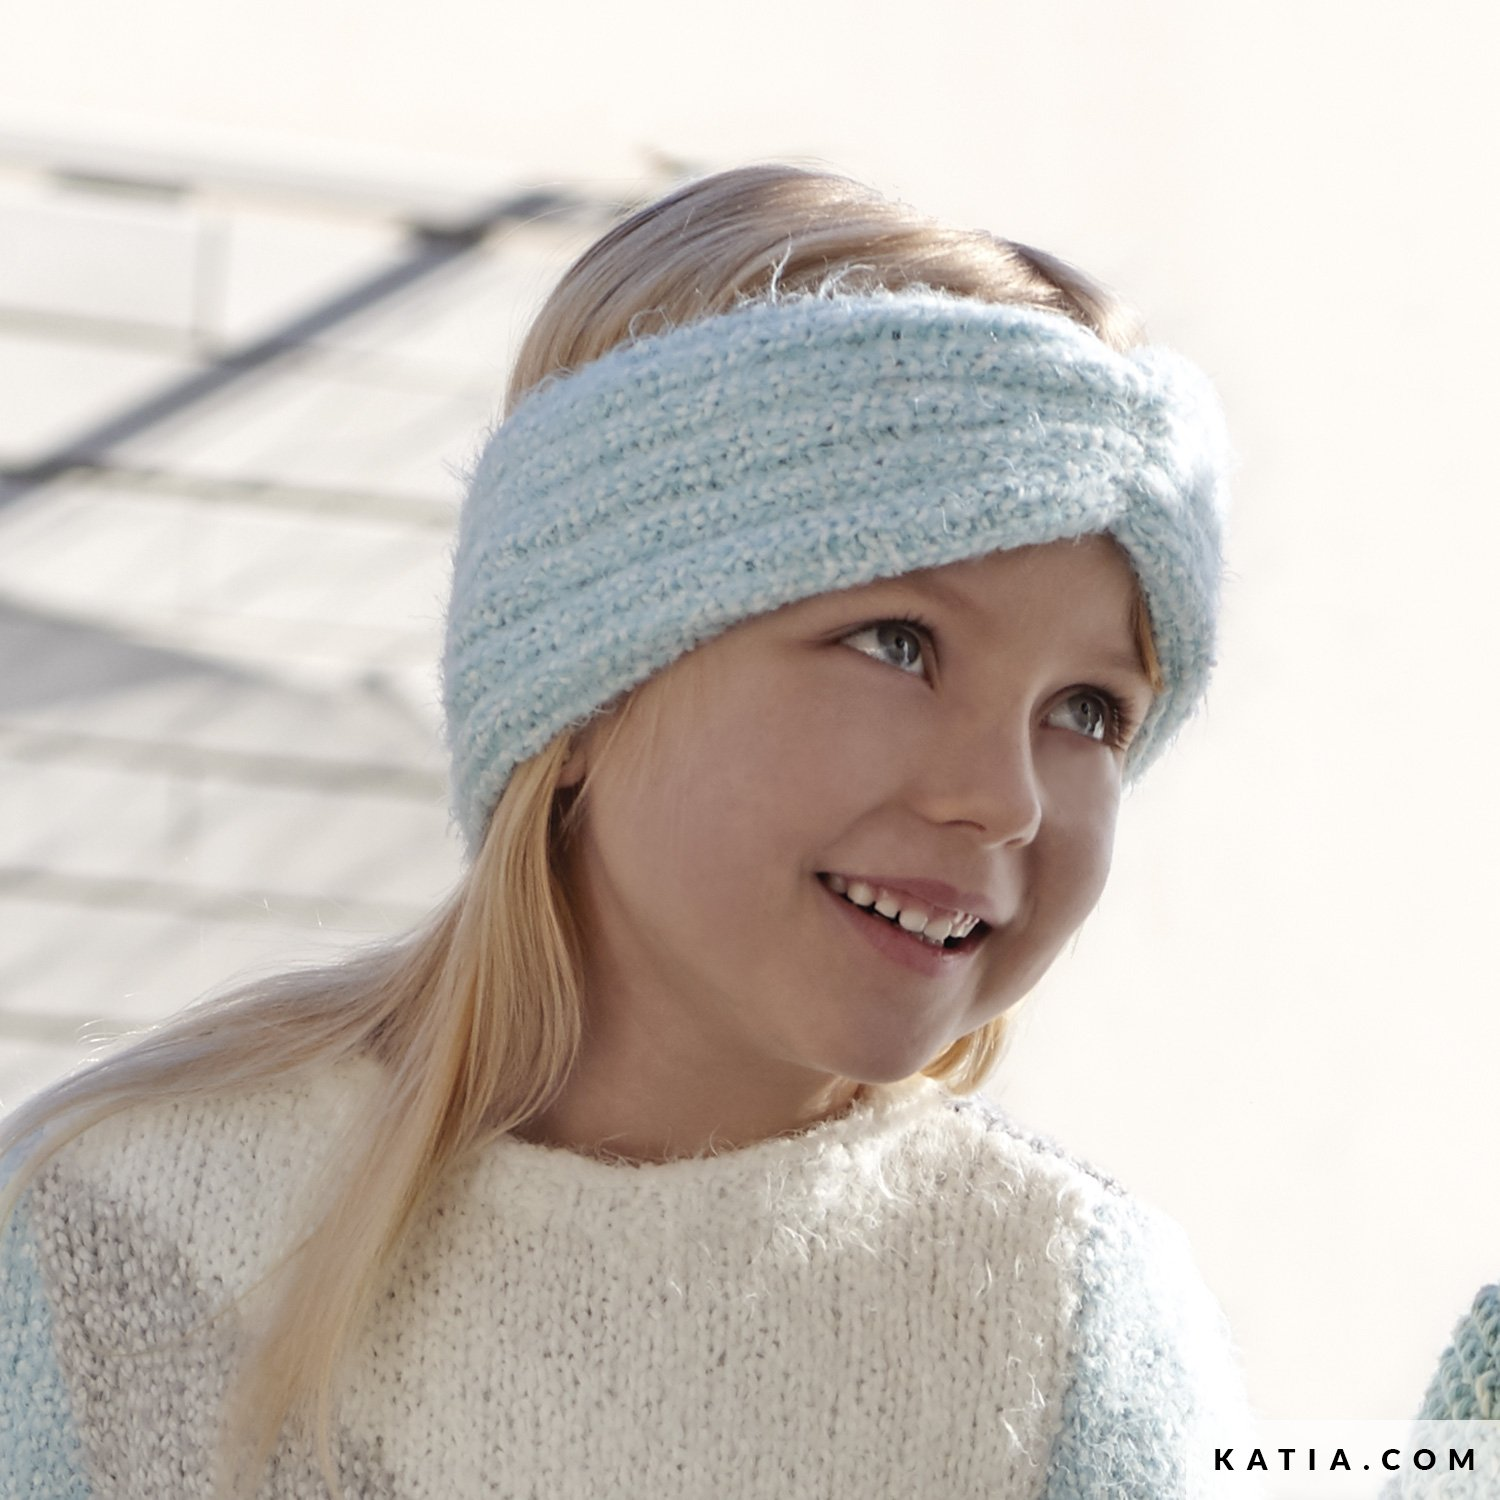 b4ef5456982 pattern knit crochet kids headband autumn winter katia 6099 1 g